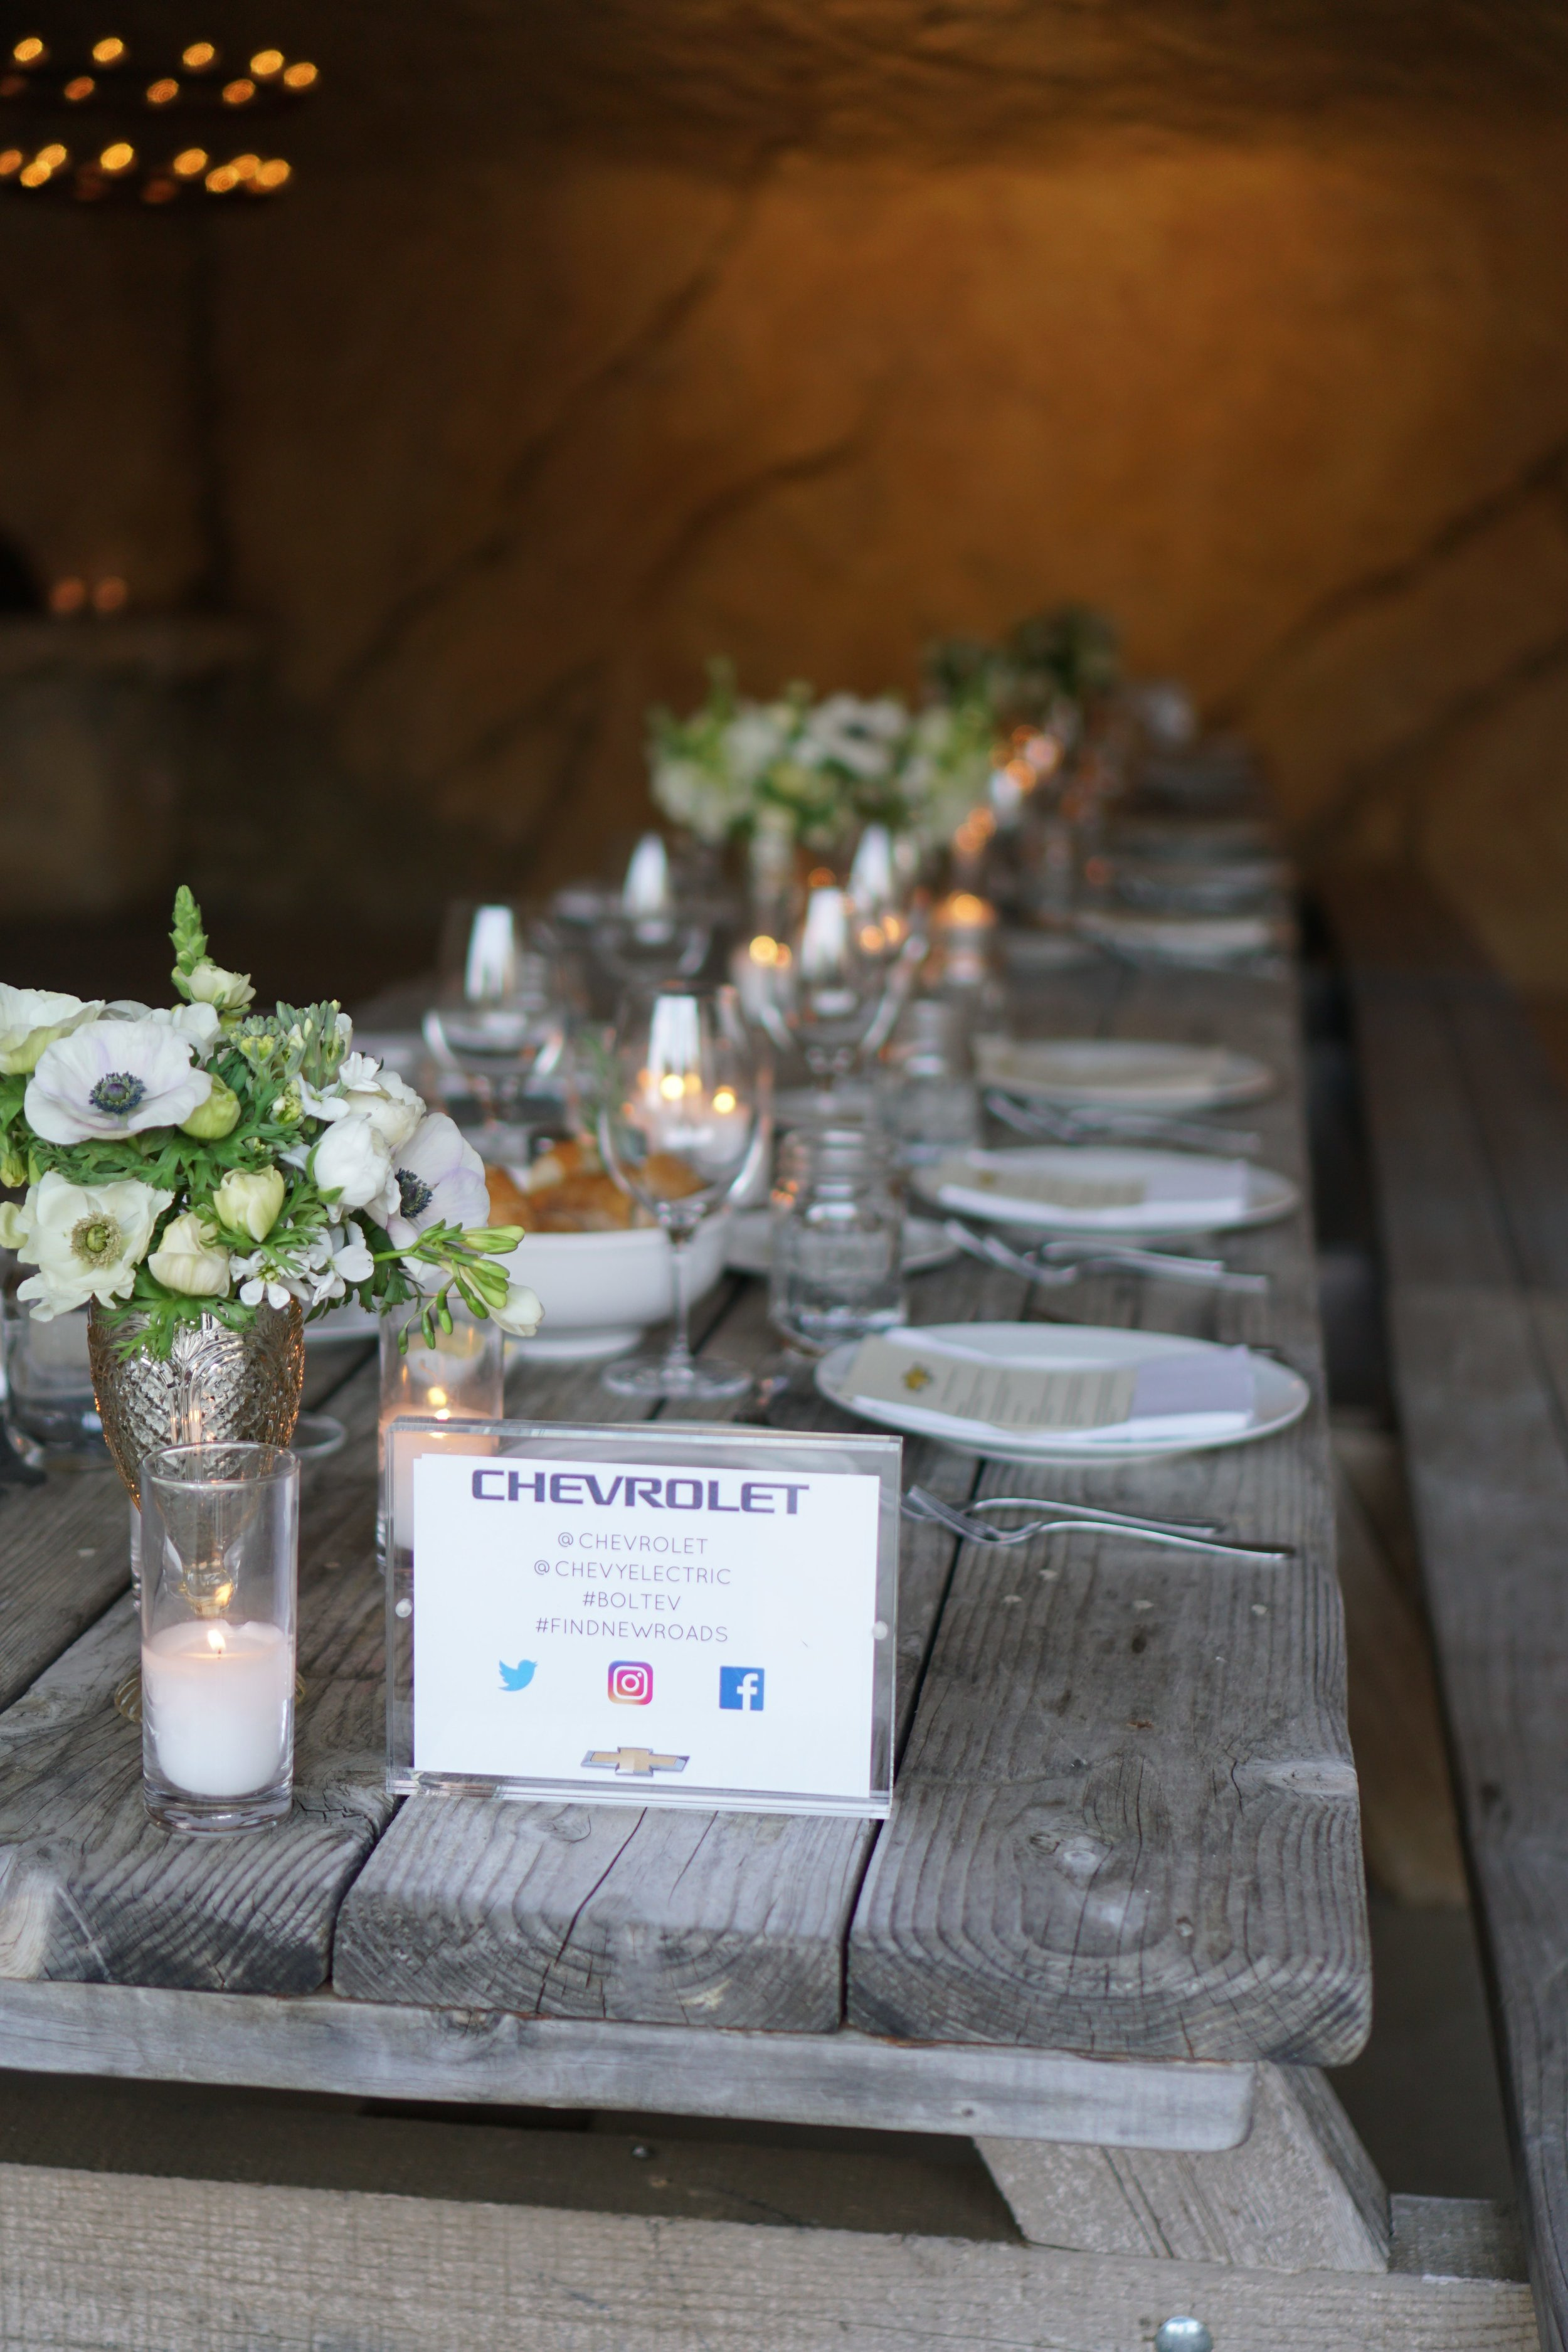 Julia Friedman attends Chevrolet dinner at Sunstone Winery and Vineyards in Santa Ynez.